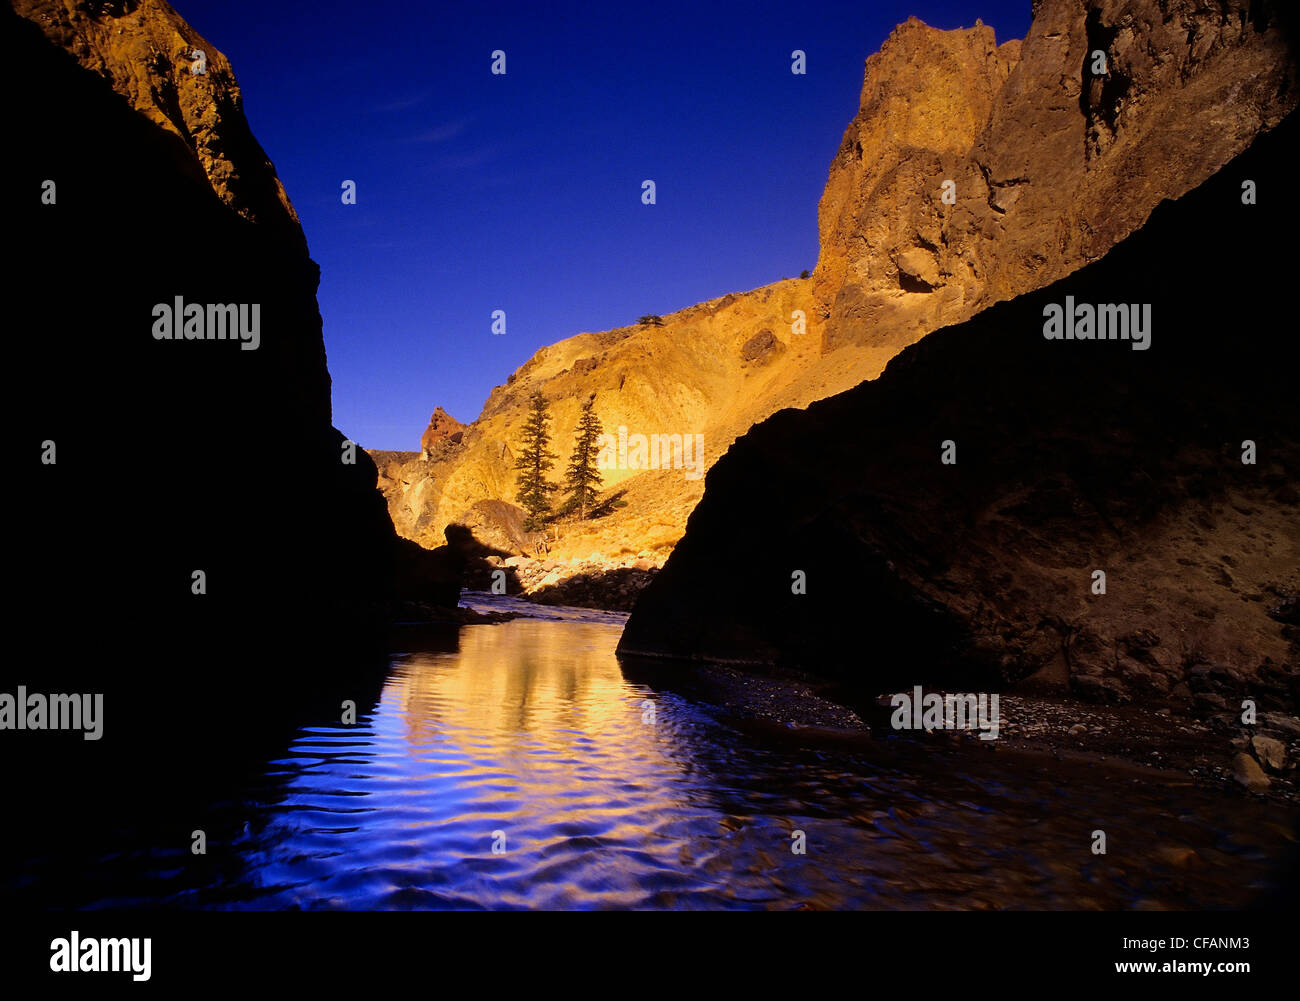 Churn Creek Protected Area at sunrise, British Columbia, Canada - Stock Image